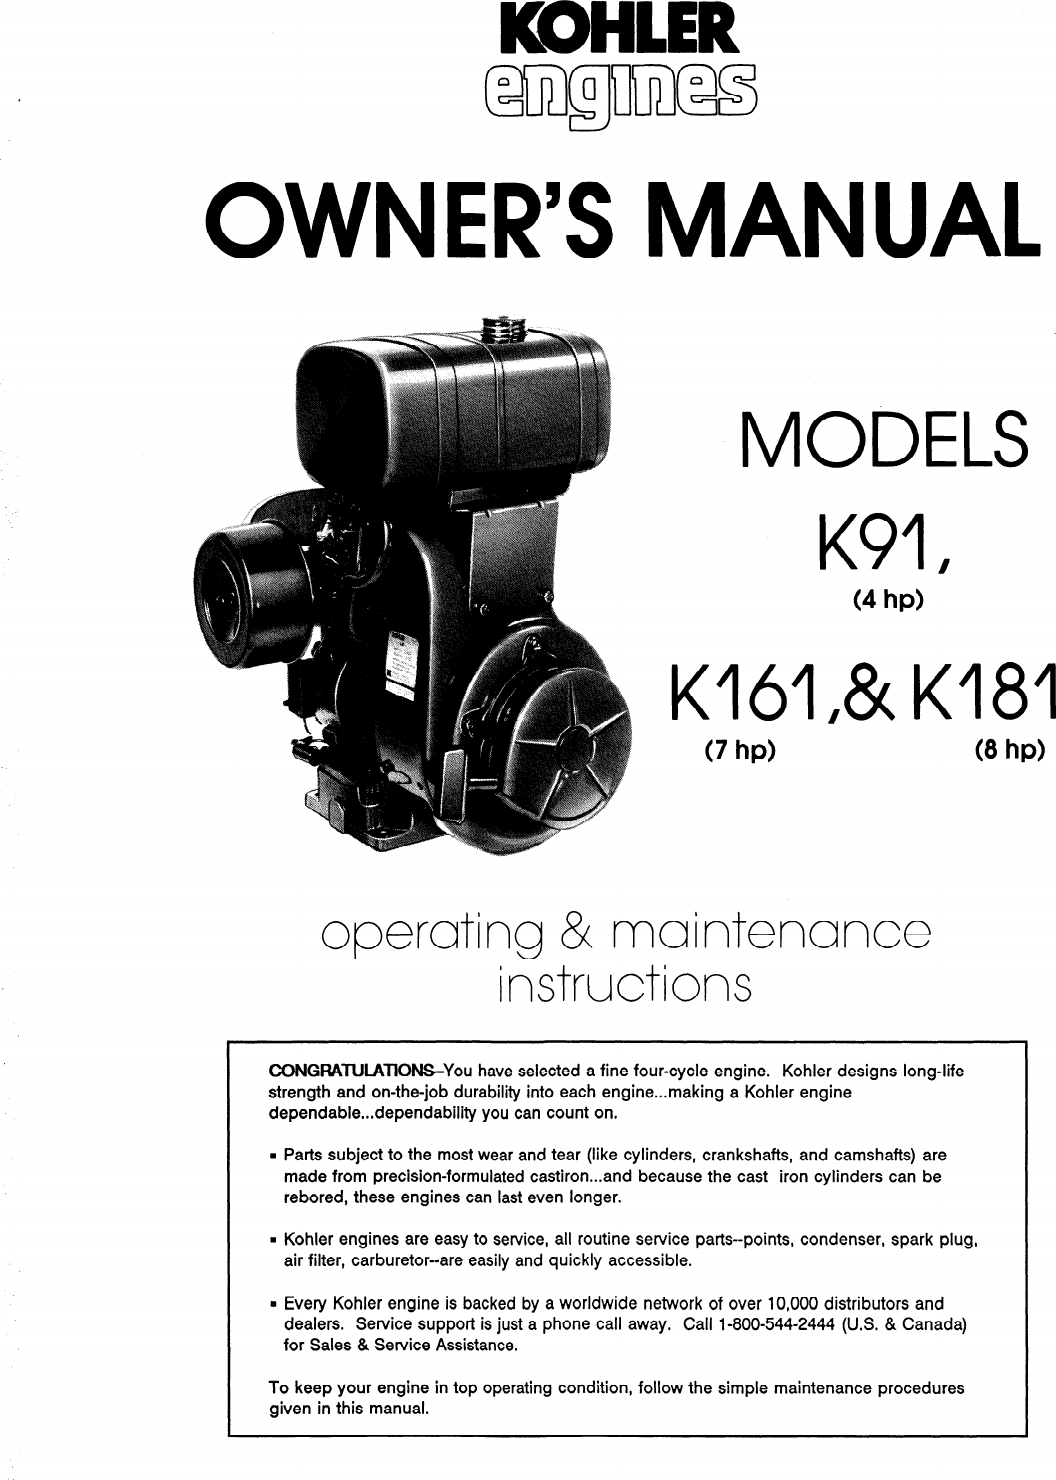 Kohler K161 Users Manual Owner's S K91, K161, & K181